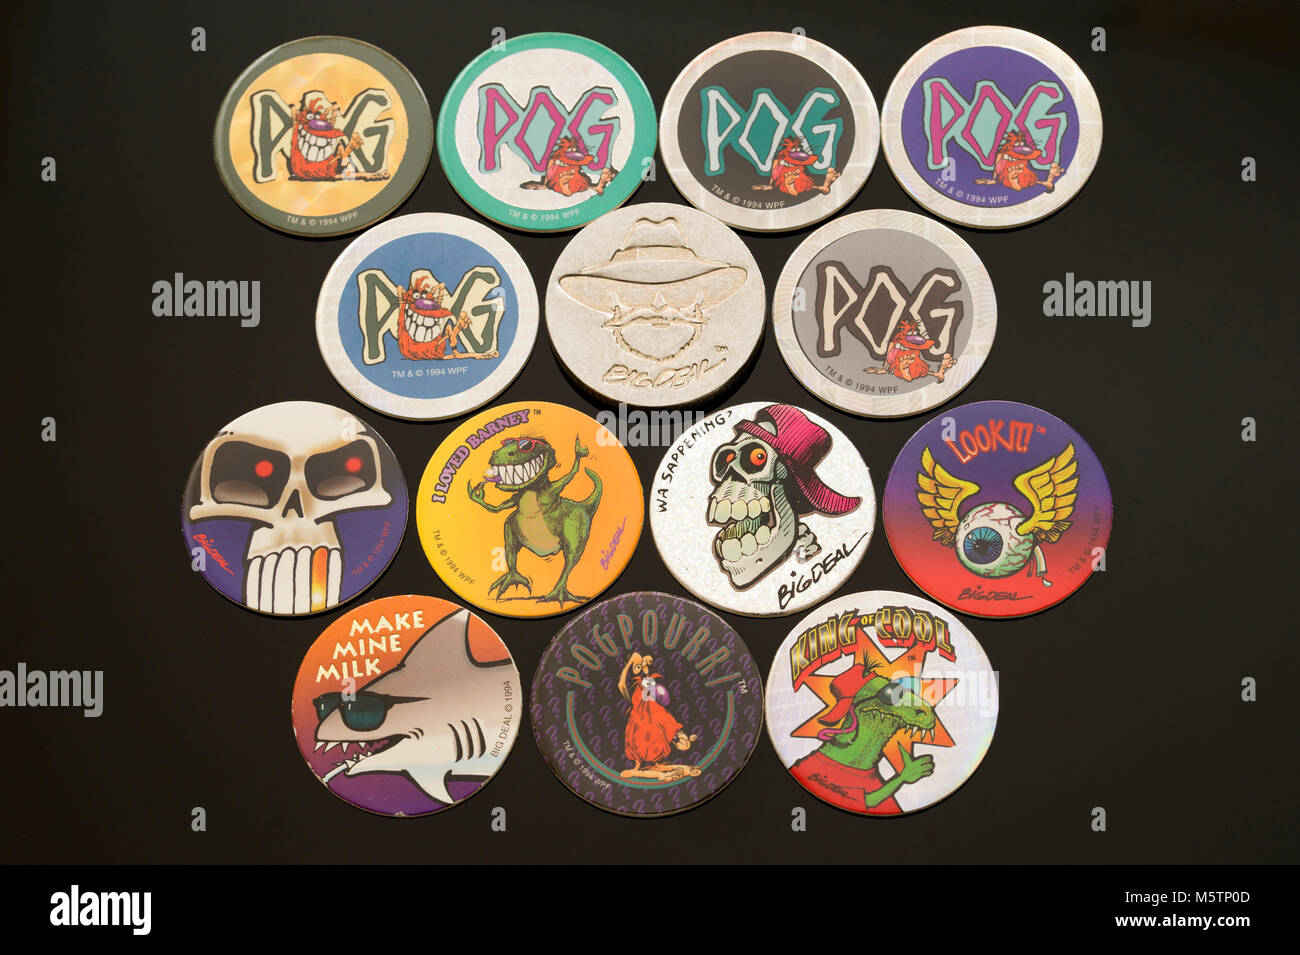 Pogs (Milk cap) collectibles which was a popular children's